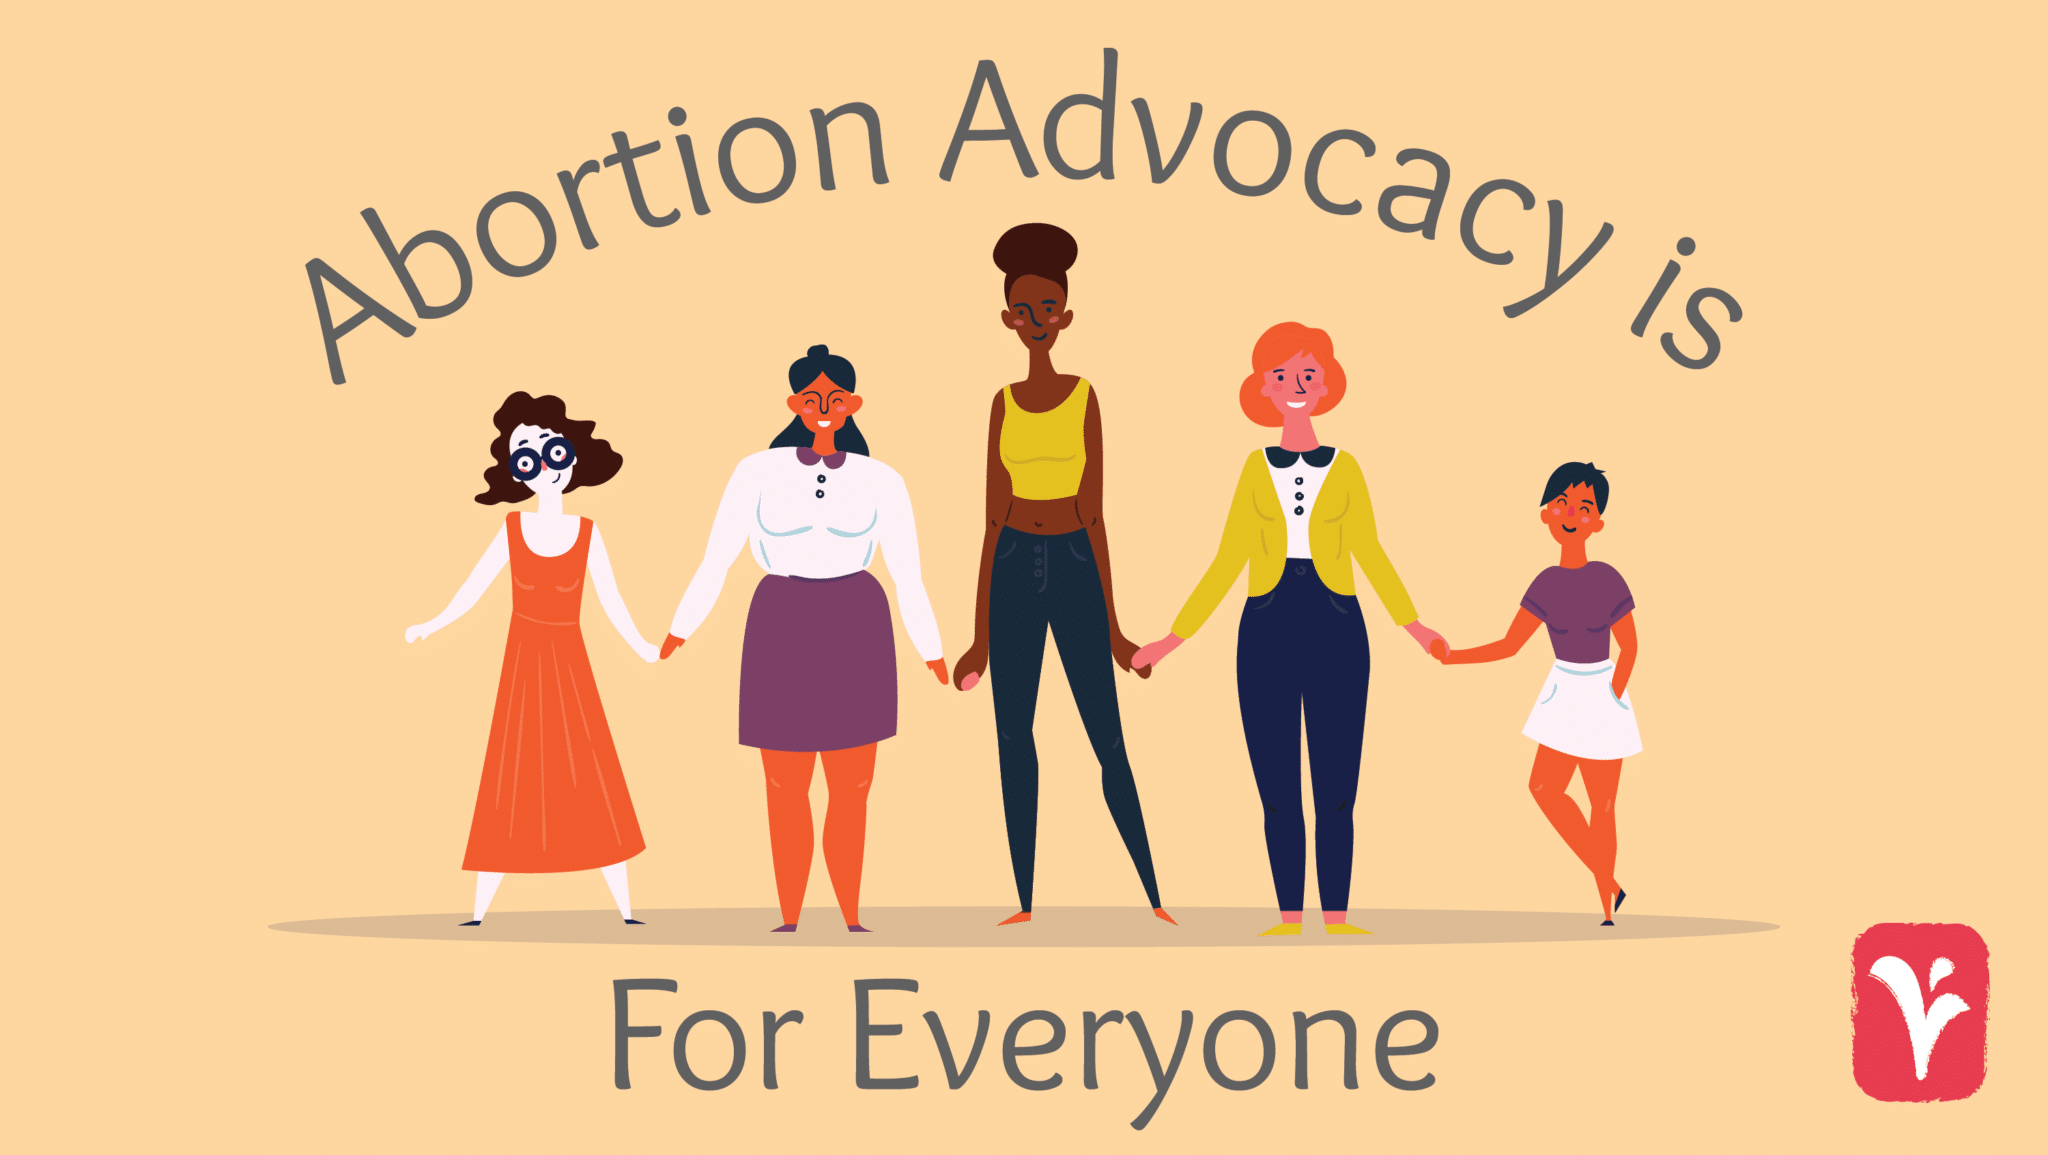 Abortion Advocacy is For Everyone